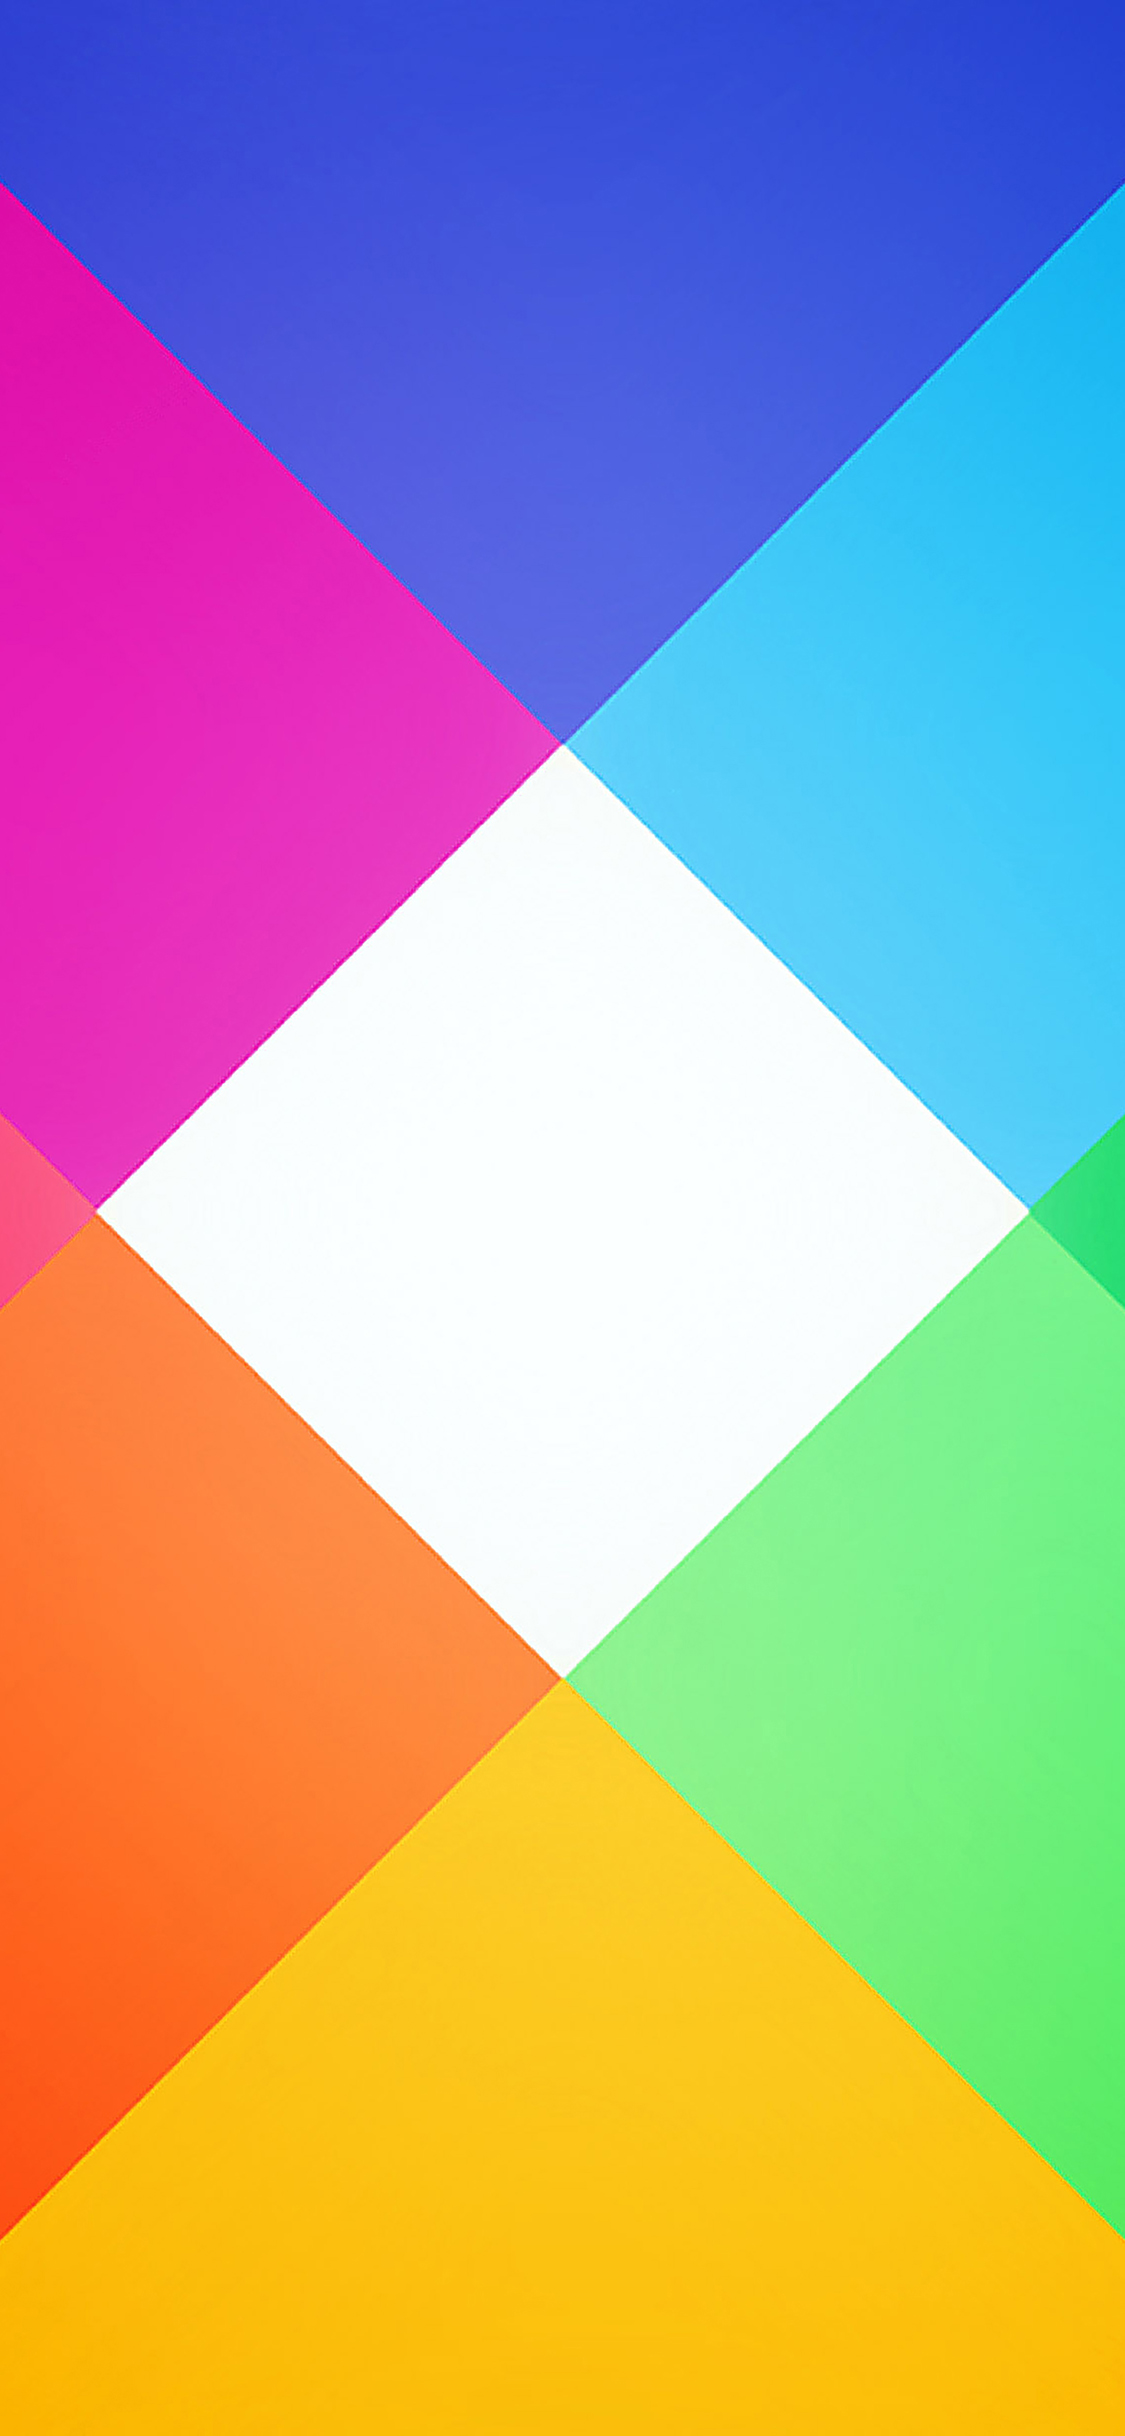 iPhoneXpapers.com-Apple-iPhone-wallpaper-vb43-wallpaper-get-it-style-rainbow-pattern